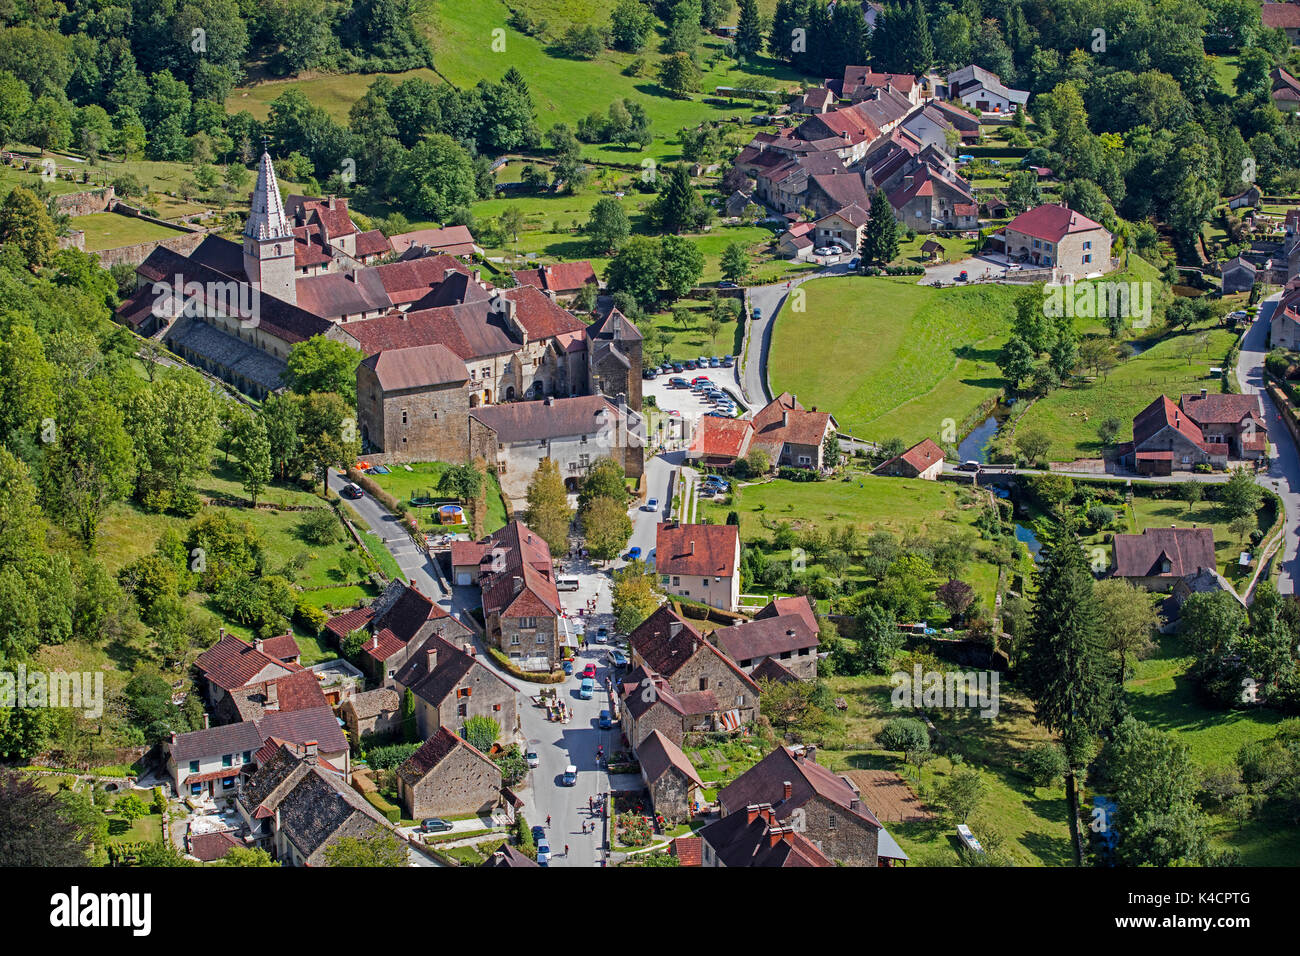 Aerial view over the Baume Abbey / Abbaye Saint-Pierre de Baume-les-Messieurs and village, Jura department in Franche-Comté, Lons-le-Saunier, France - Stock Image